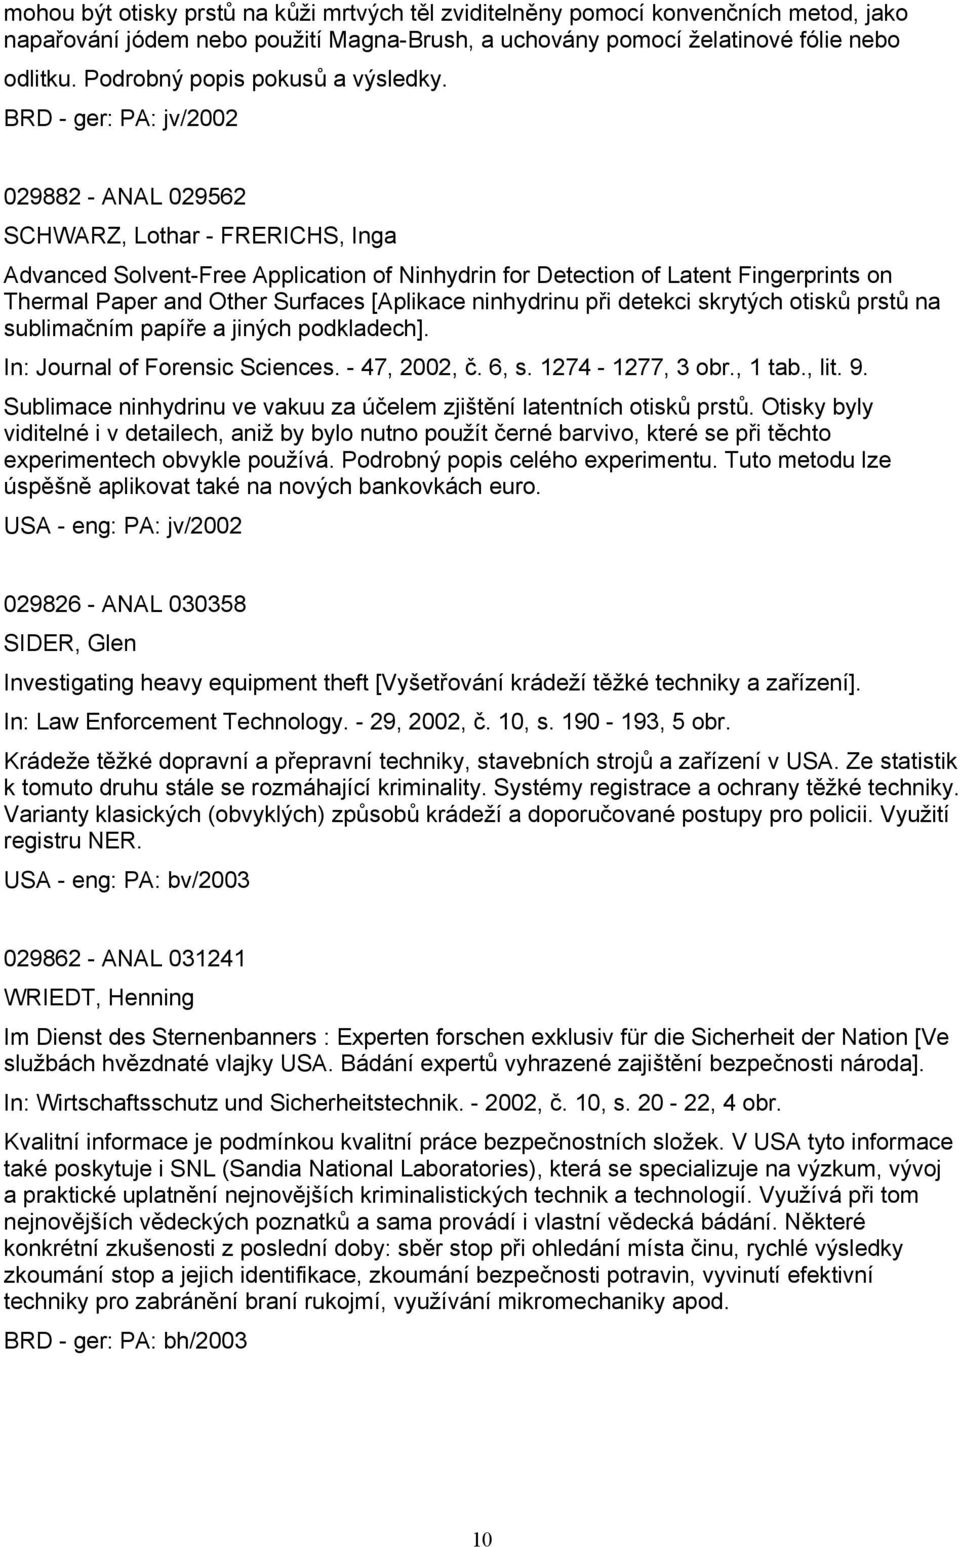 BRD - ger: PA: jv/2002 029882 - ANAL 029562 SCHWARZ, Lothar - FRERICHS, Inga Advanced Solvent-Free Application of Ninhydrin for Detection of Latent Fingerprints on Thermal Paper and Other Surfaces